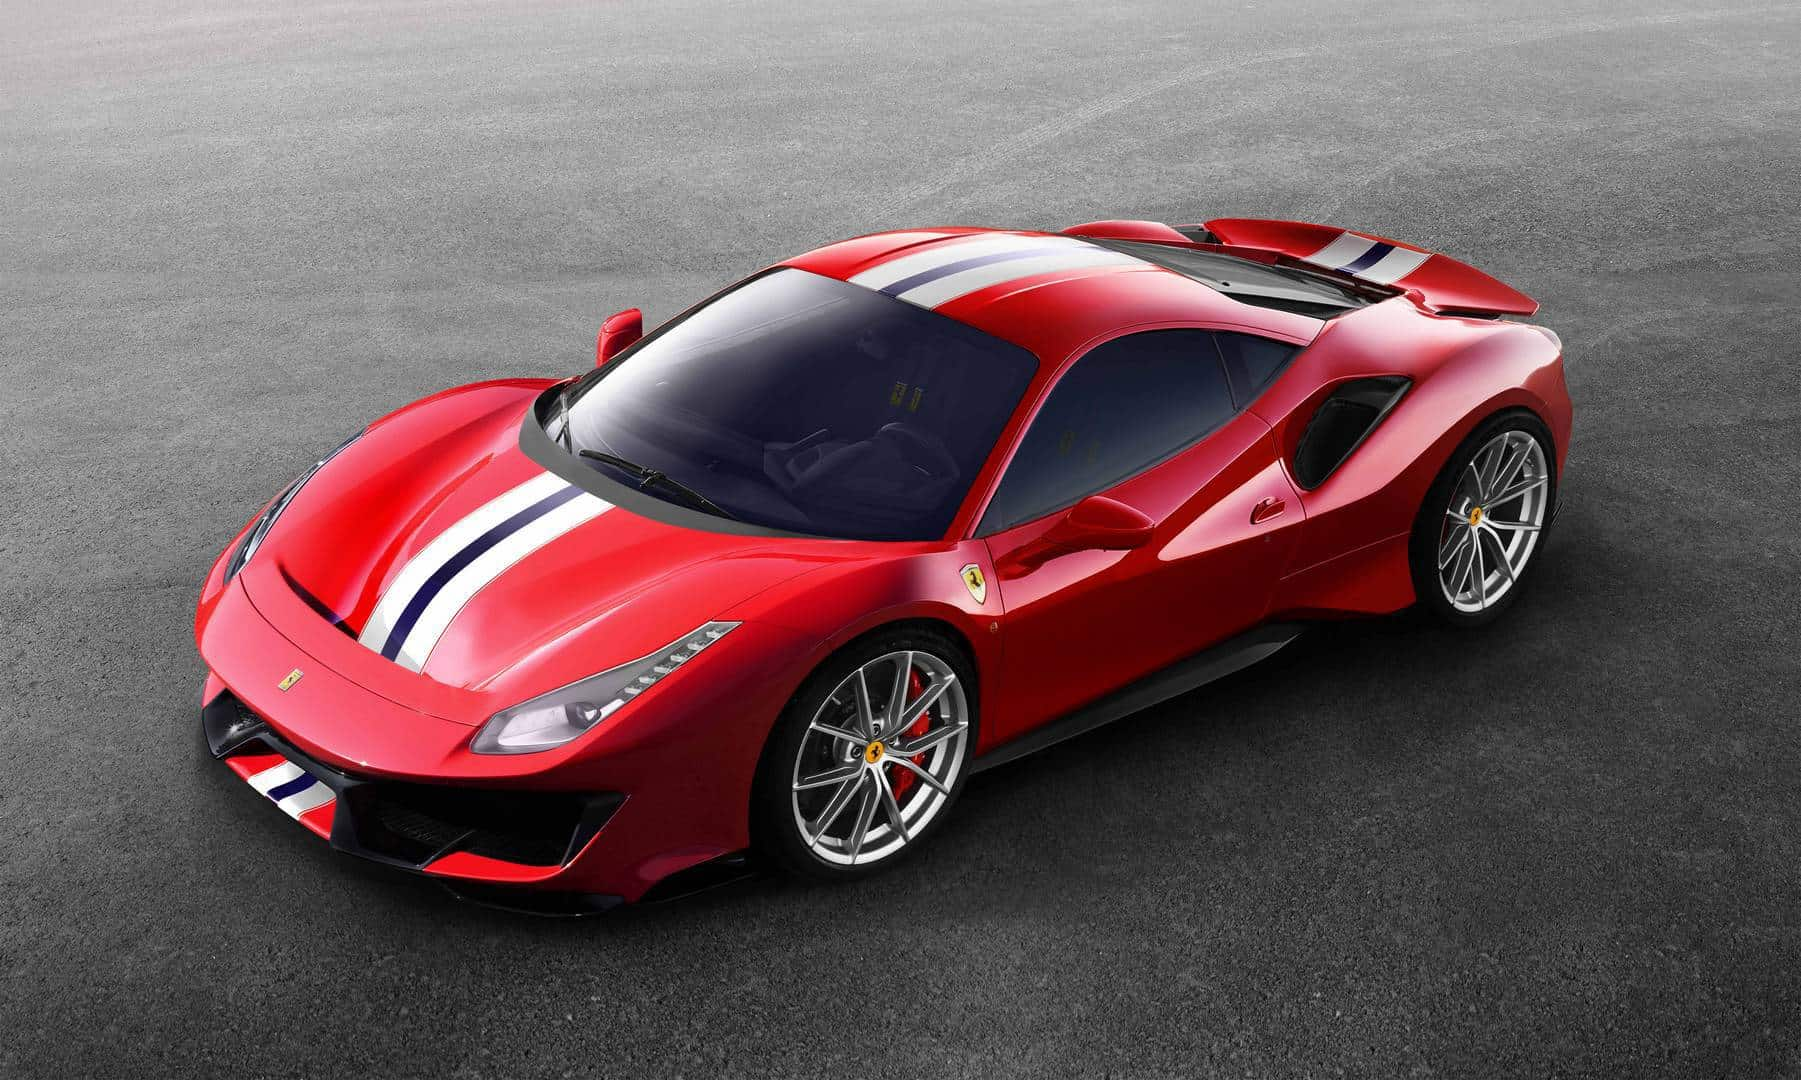 The Mind Blowing Ferrari 488 Pista Is Going For The Win